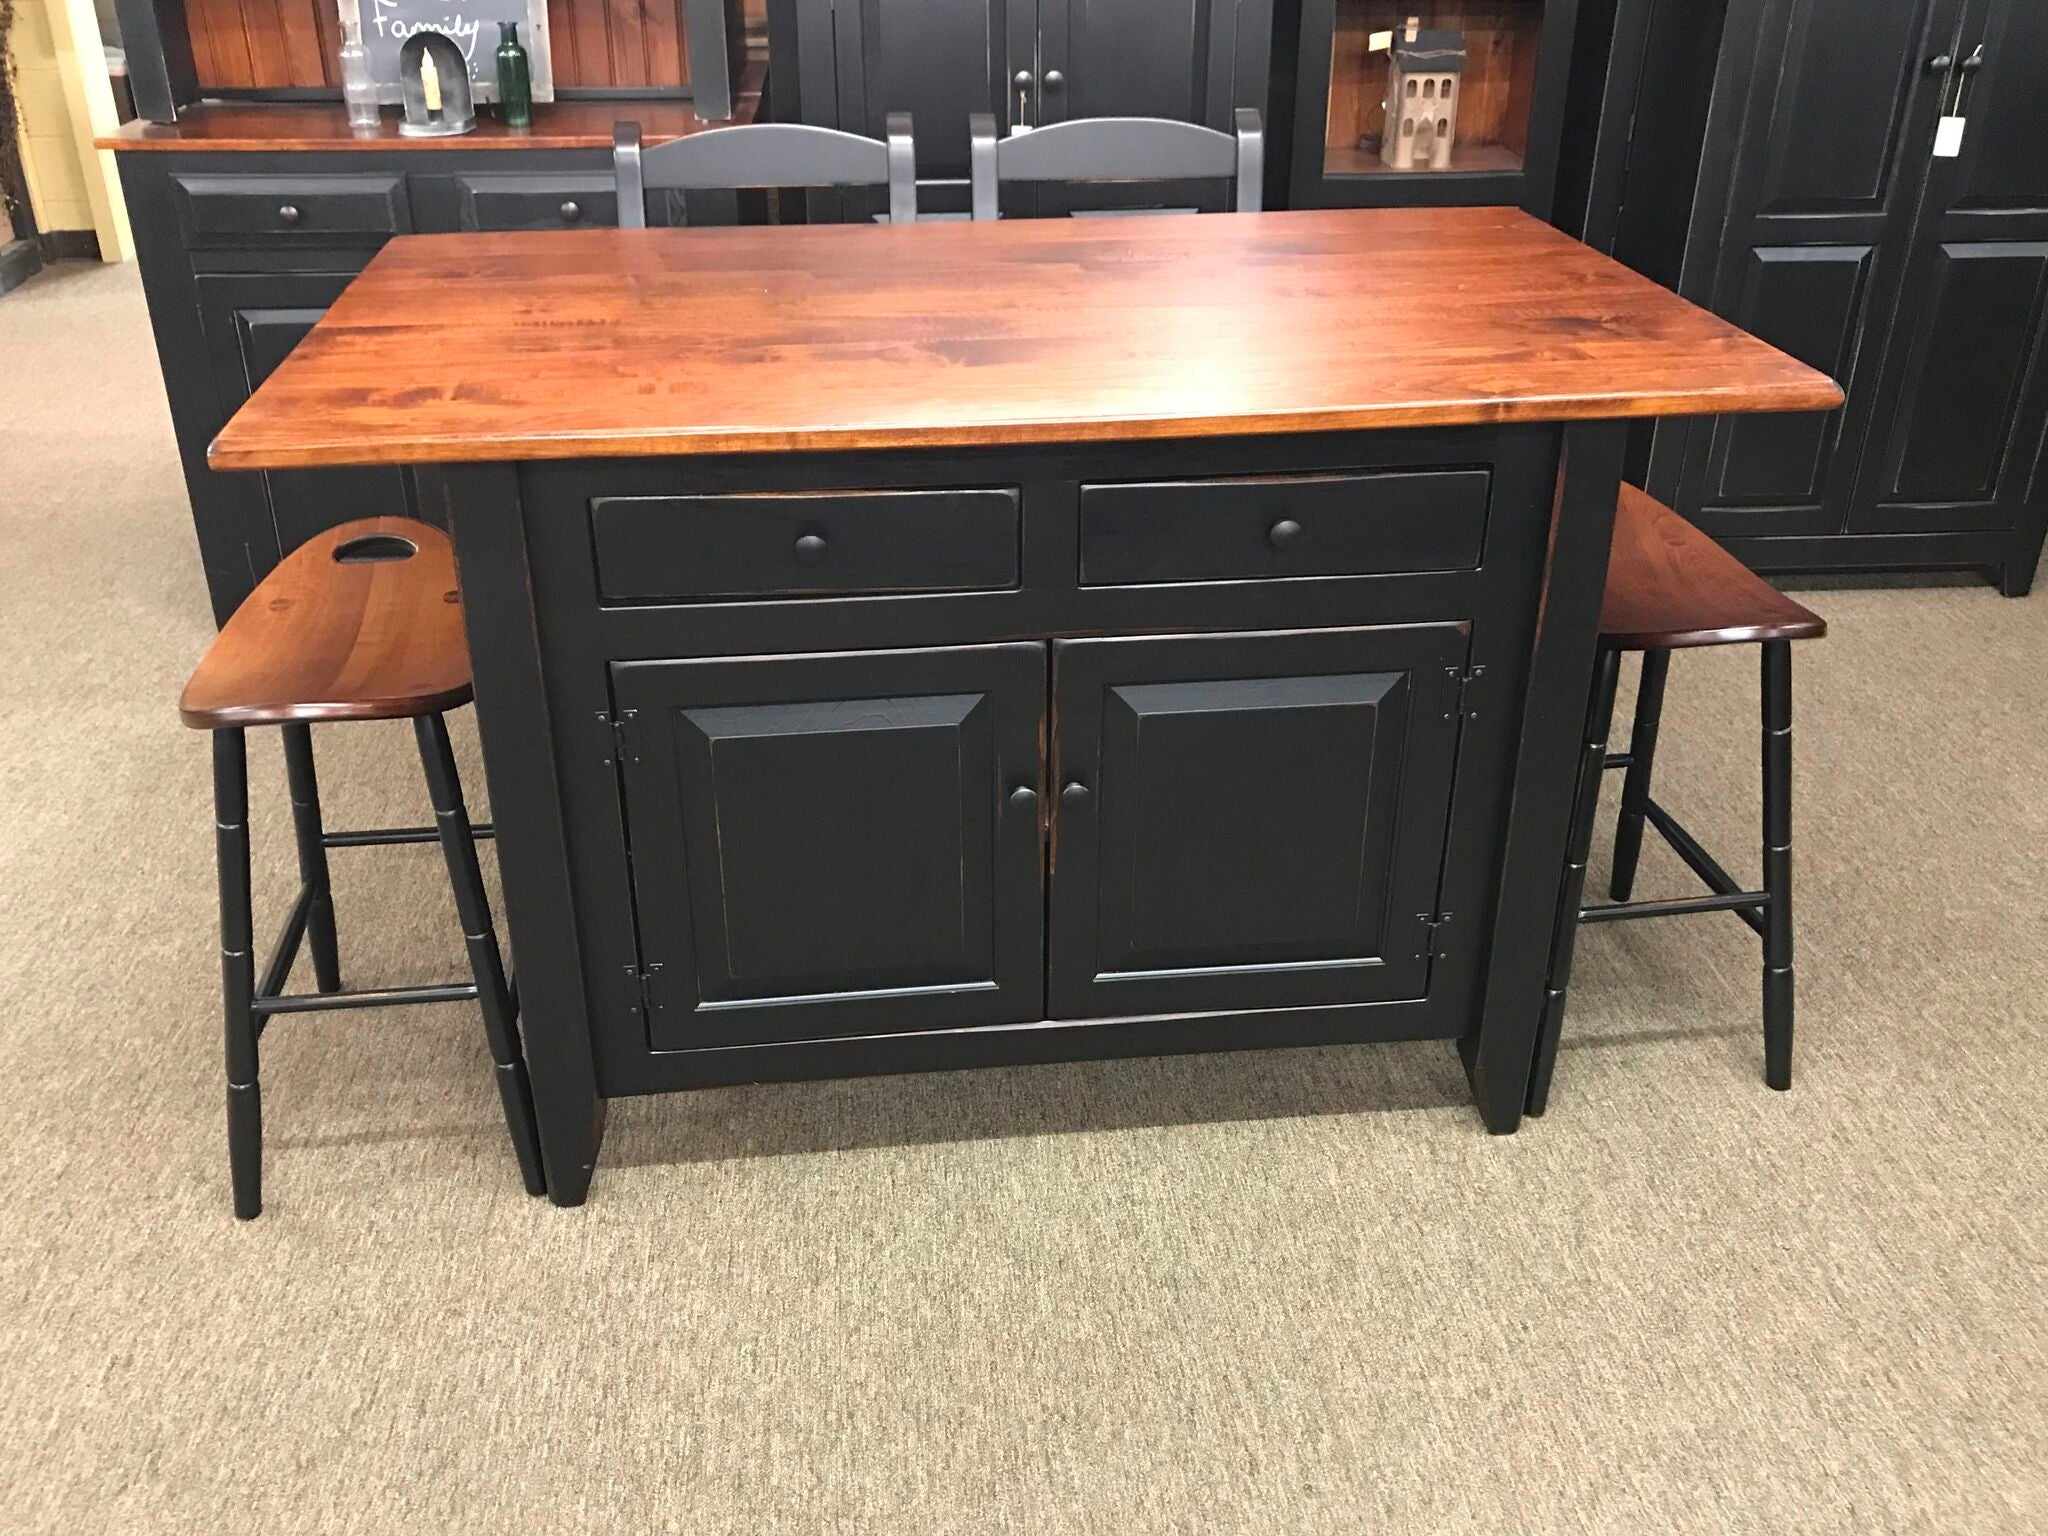 maple kitchen island black kitchen island with 3x5 michael s cherry wormy maple top worn kc country home accents 4451